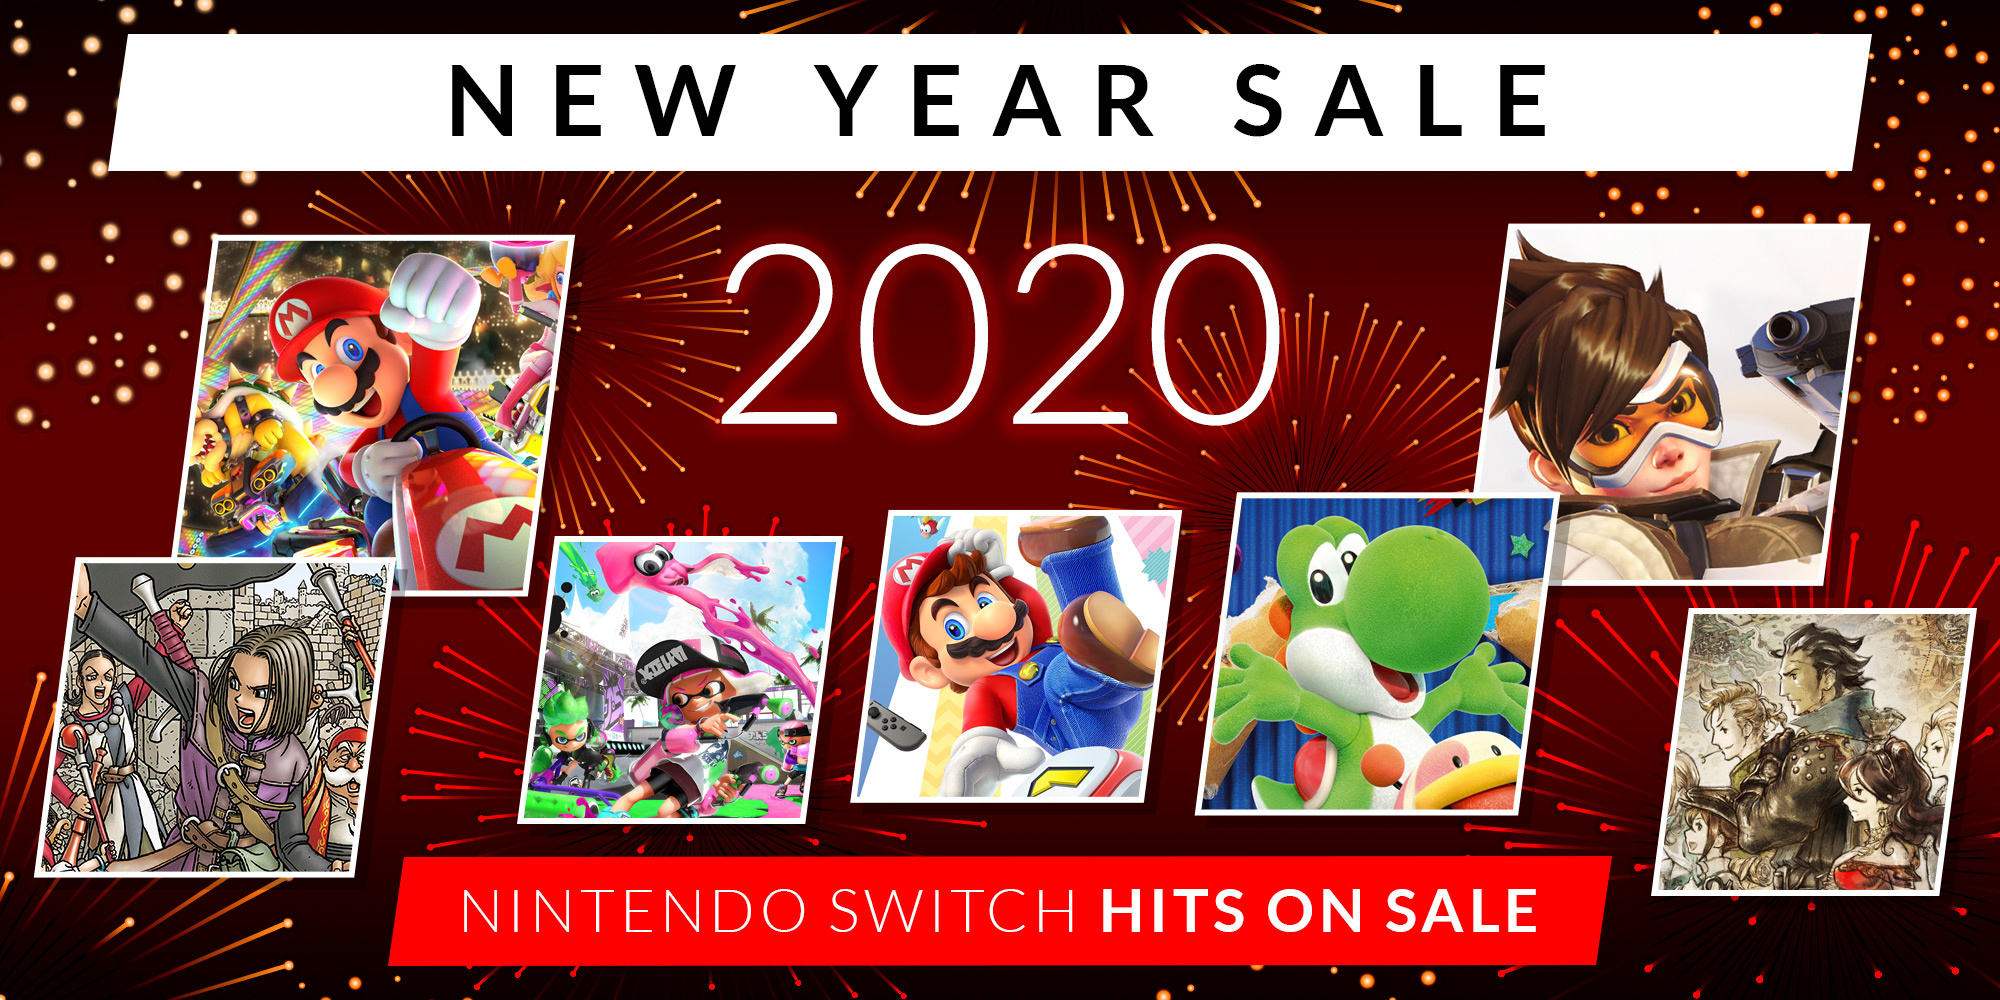 Reminder: Nintendo's New Year Switch Sale Ends Today, Up To 40% Off Major Games (Europe)